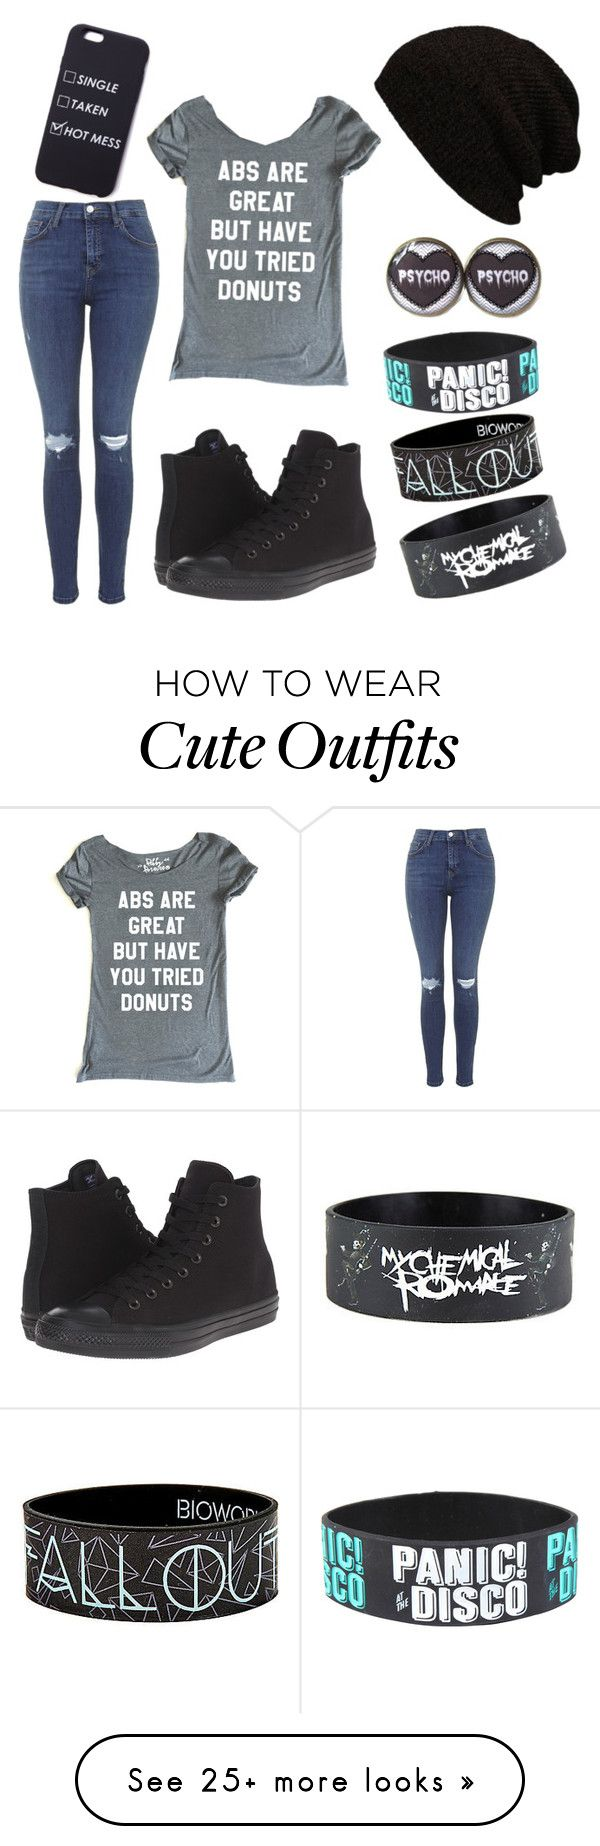 """Everyday Outfit"" by jezebellaredfern on Polyvore featuring Topshop and Converse"